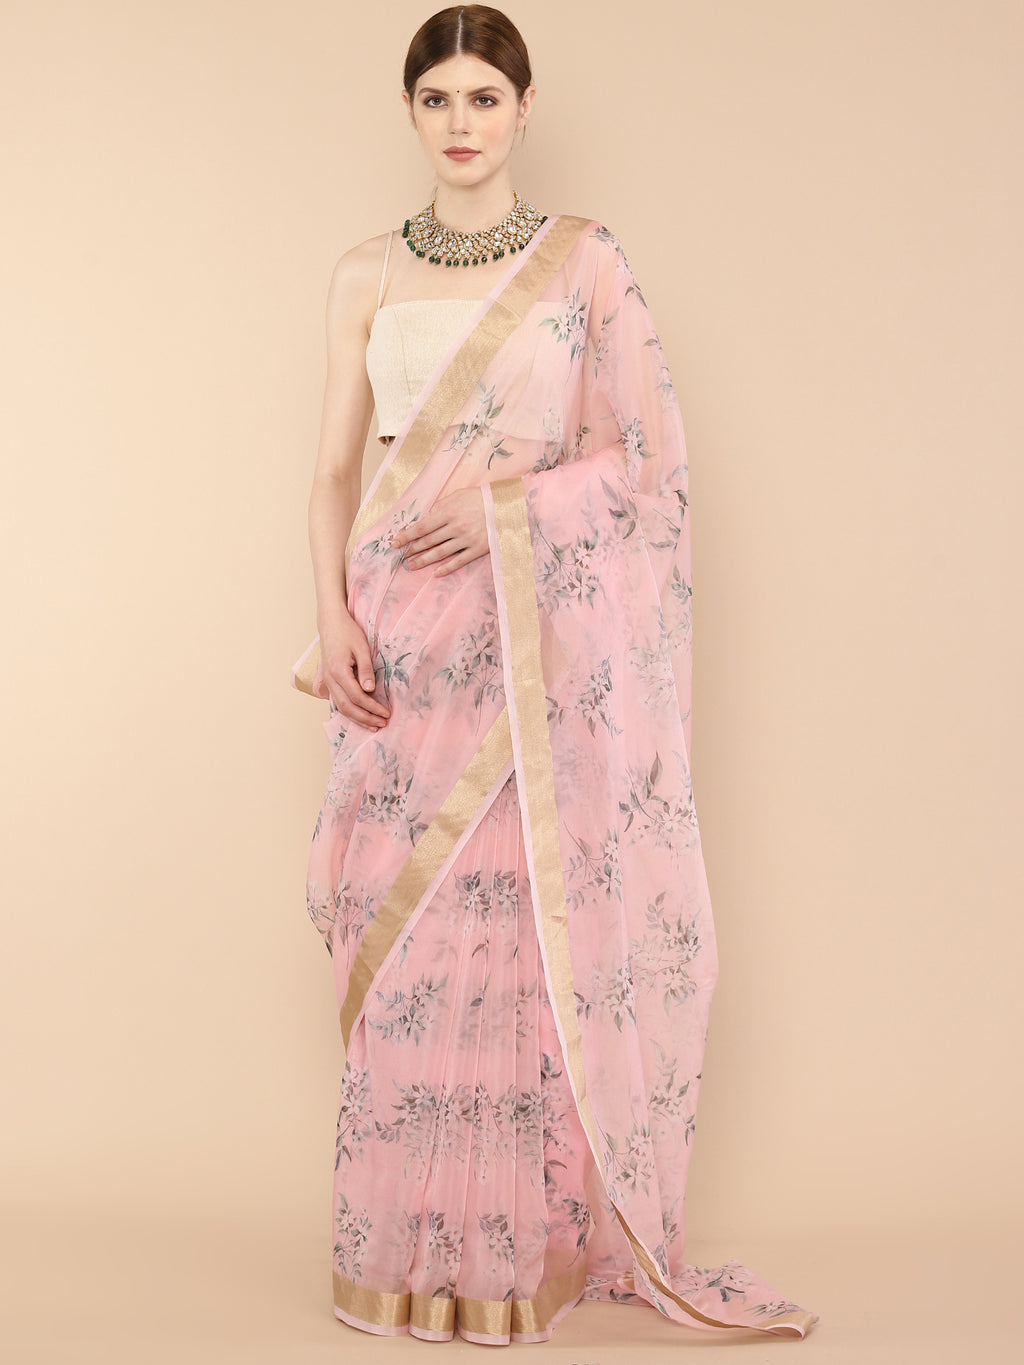 Peachy pink floral Pure Organza Saree with Zari border